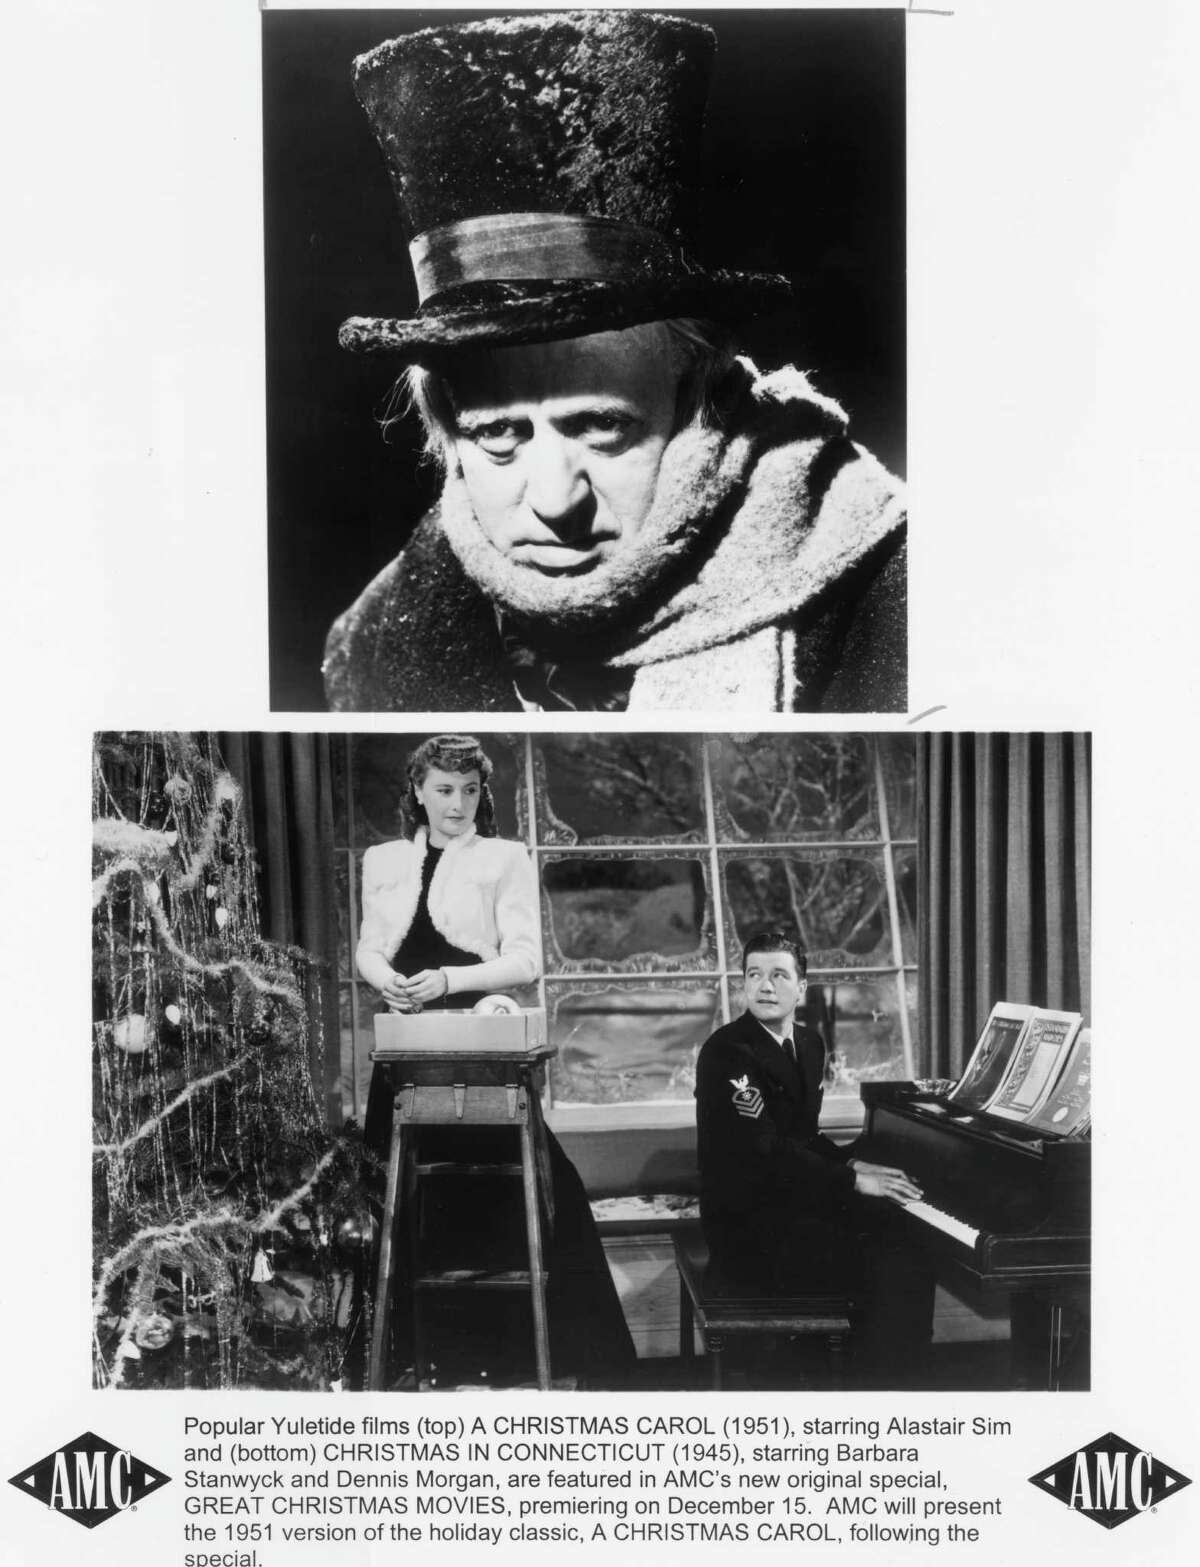 """TOP: Alastair Sim in """"A Christmas Carol,"""" 1951; BOTTOM: Barbara Stanwyck and Dennis Morgan in """"Christmas in Connecticut,"""" 1945. Popular Yuletide films """"Christmas in Connecticut"""" (1945), starring Barbara Stanwyck and Dennis Morgan, are featured in AMC's new original special, GREAT CHRISTMAS MOVIES, premiering on December 15, AMC will present the 1951 version of the hoilday classic, A CHRISTMAS CAROL, following the special. HOUCHRON CAPTION (12/24/1998): Alastair Sim stars in the 1951 version of """"A Christmas Carol,"""" 8 tonight on AMC. HOUCHRON CAPTION (11/26/2004) SECSTAR FRONT: SIM."""